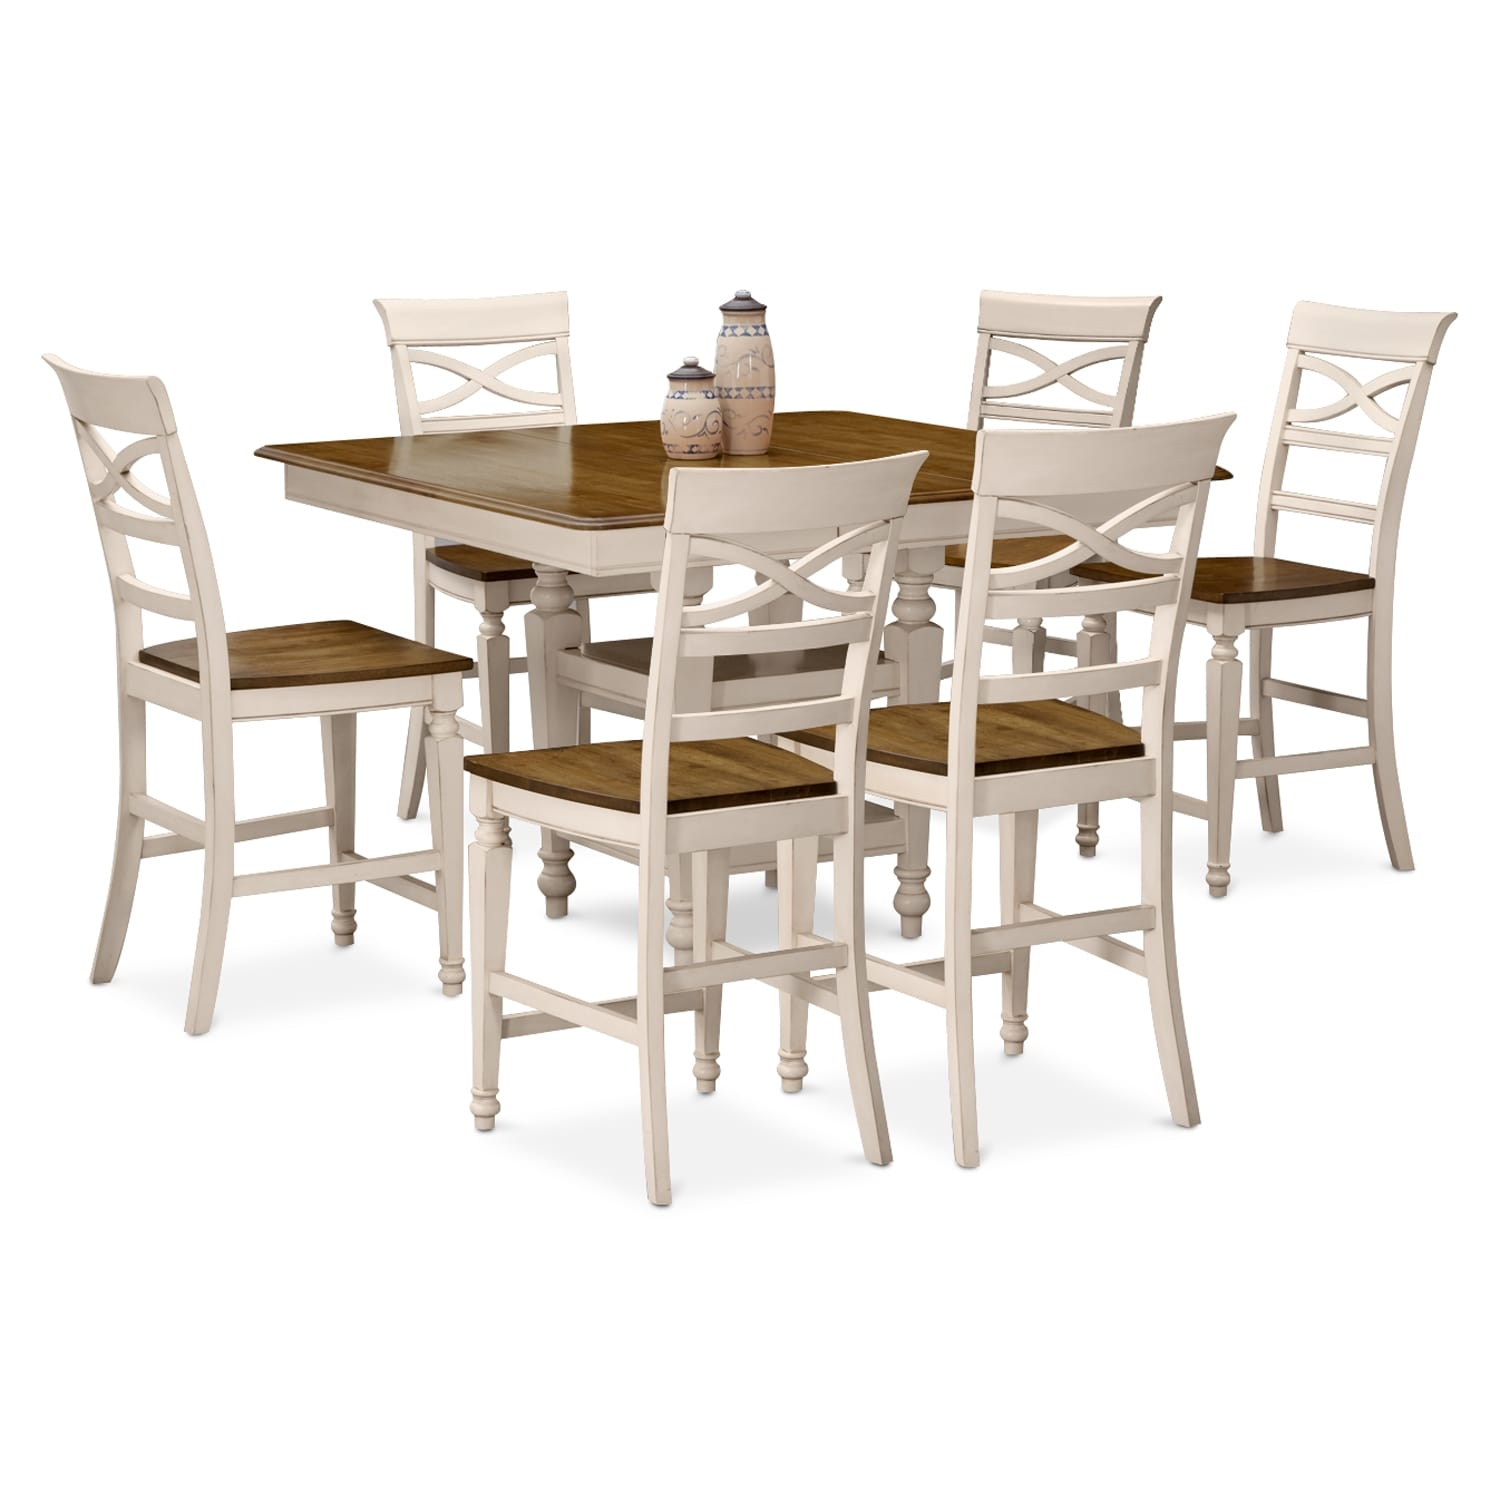 Counter Height Dining Room: Sophie Cream 7 Pc. Counter-Height Dining Room